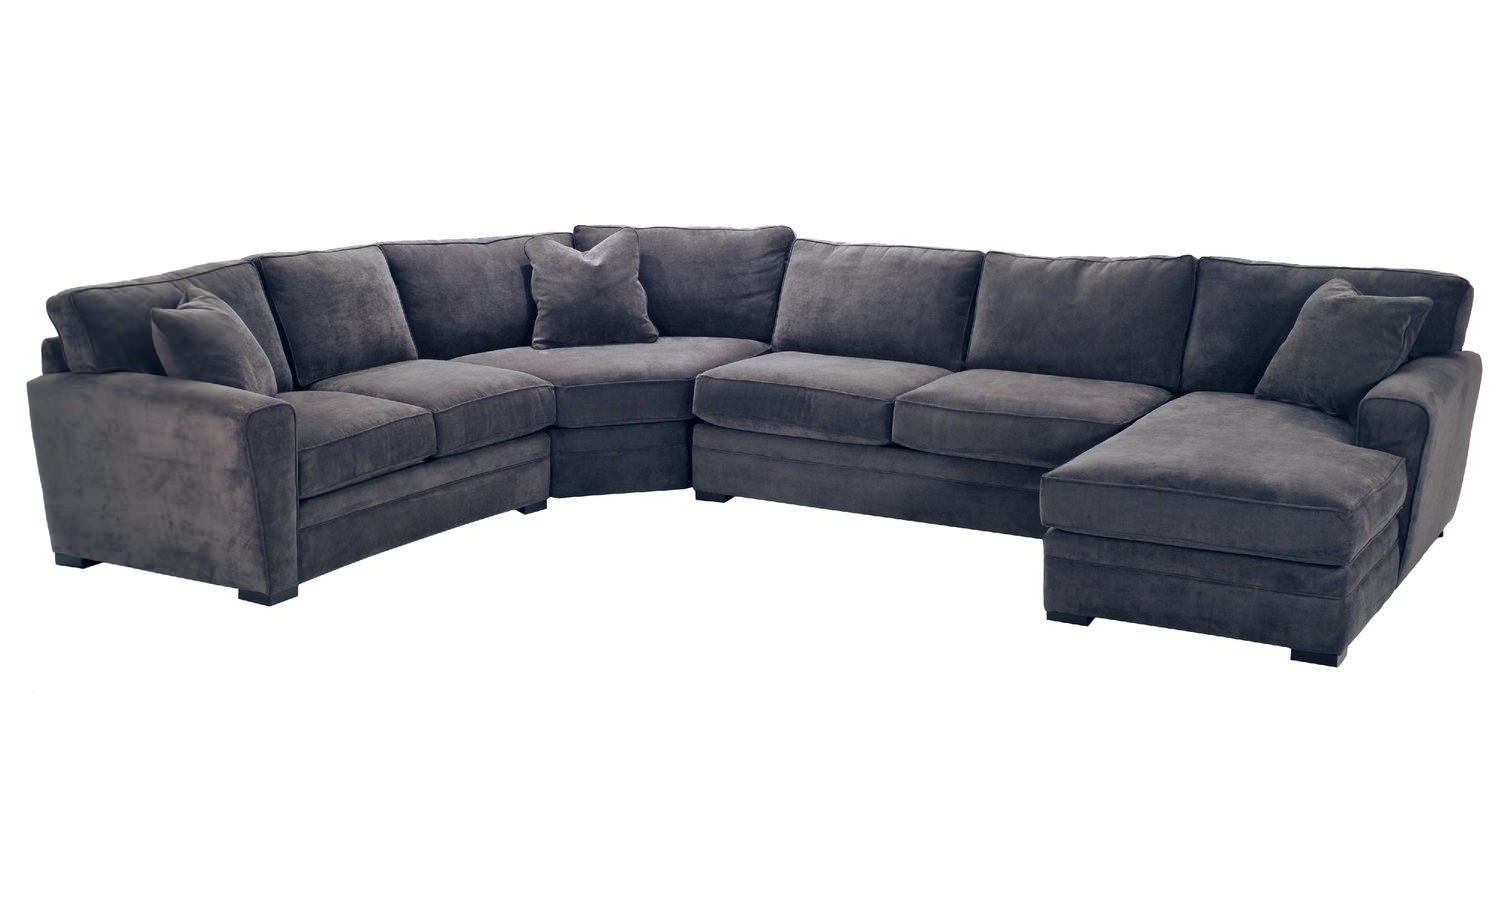 Artemis 4 Piece Sectional | Hom Furniture with Blaine 3 Piece Sectionals (Image 4 of 30)